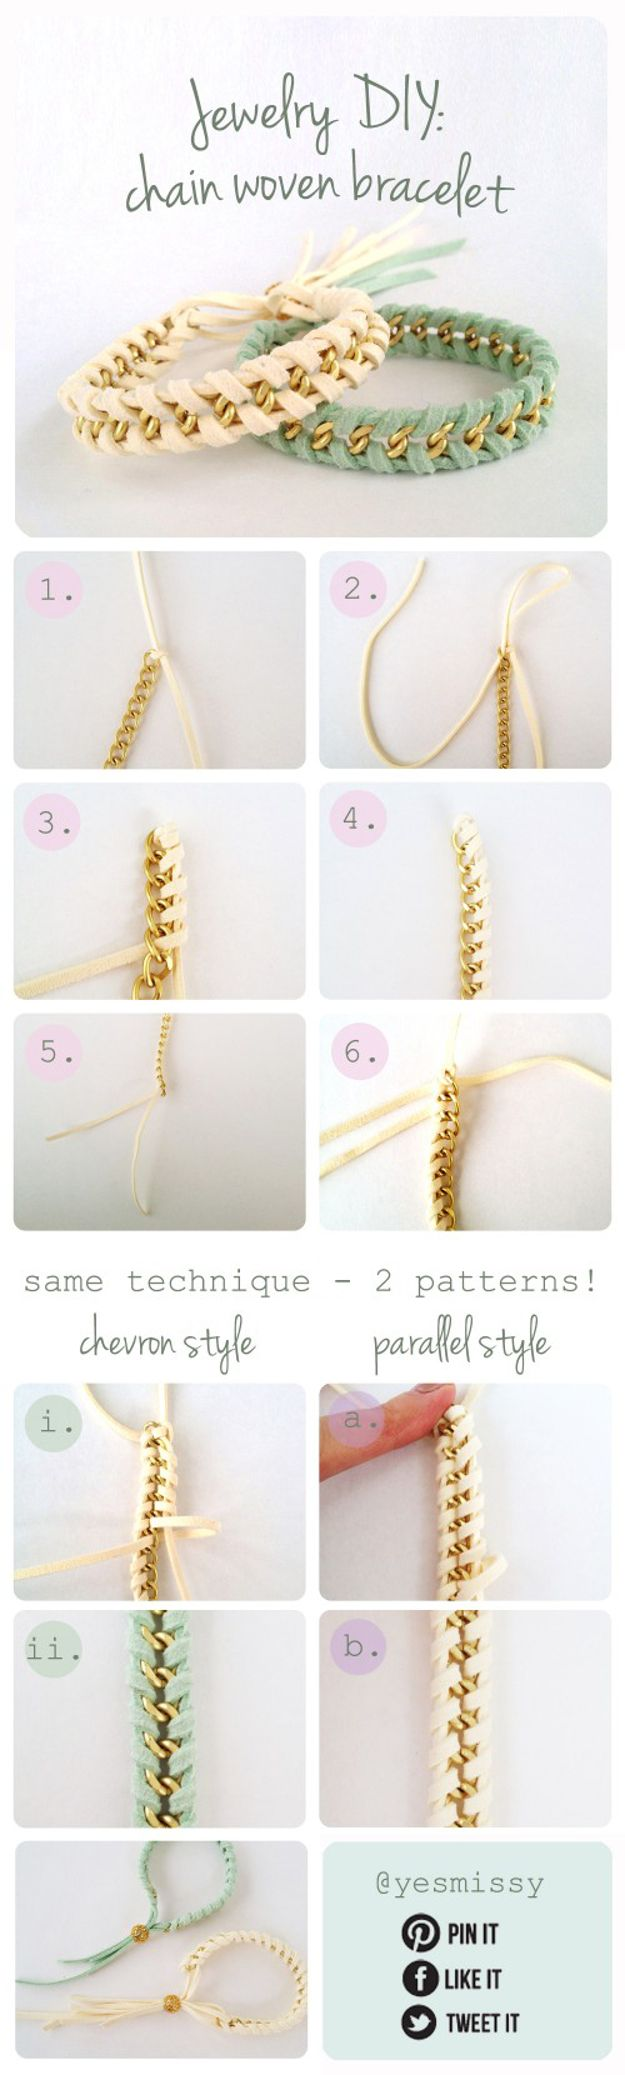 Braided Chain DIY Bracelets   This is taking your friendship bracelet to a whole new level. #DIYReady DIYReady.com